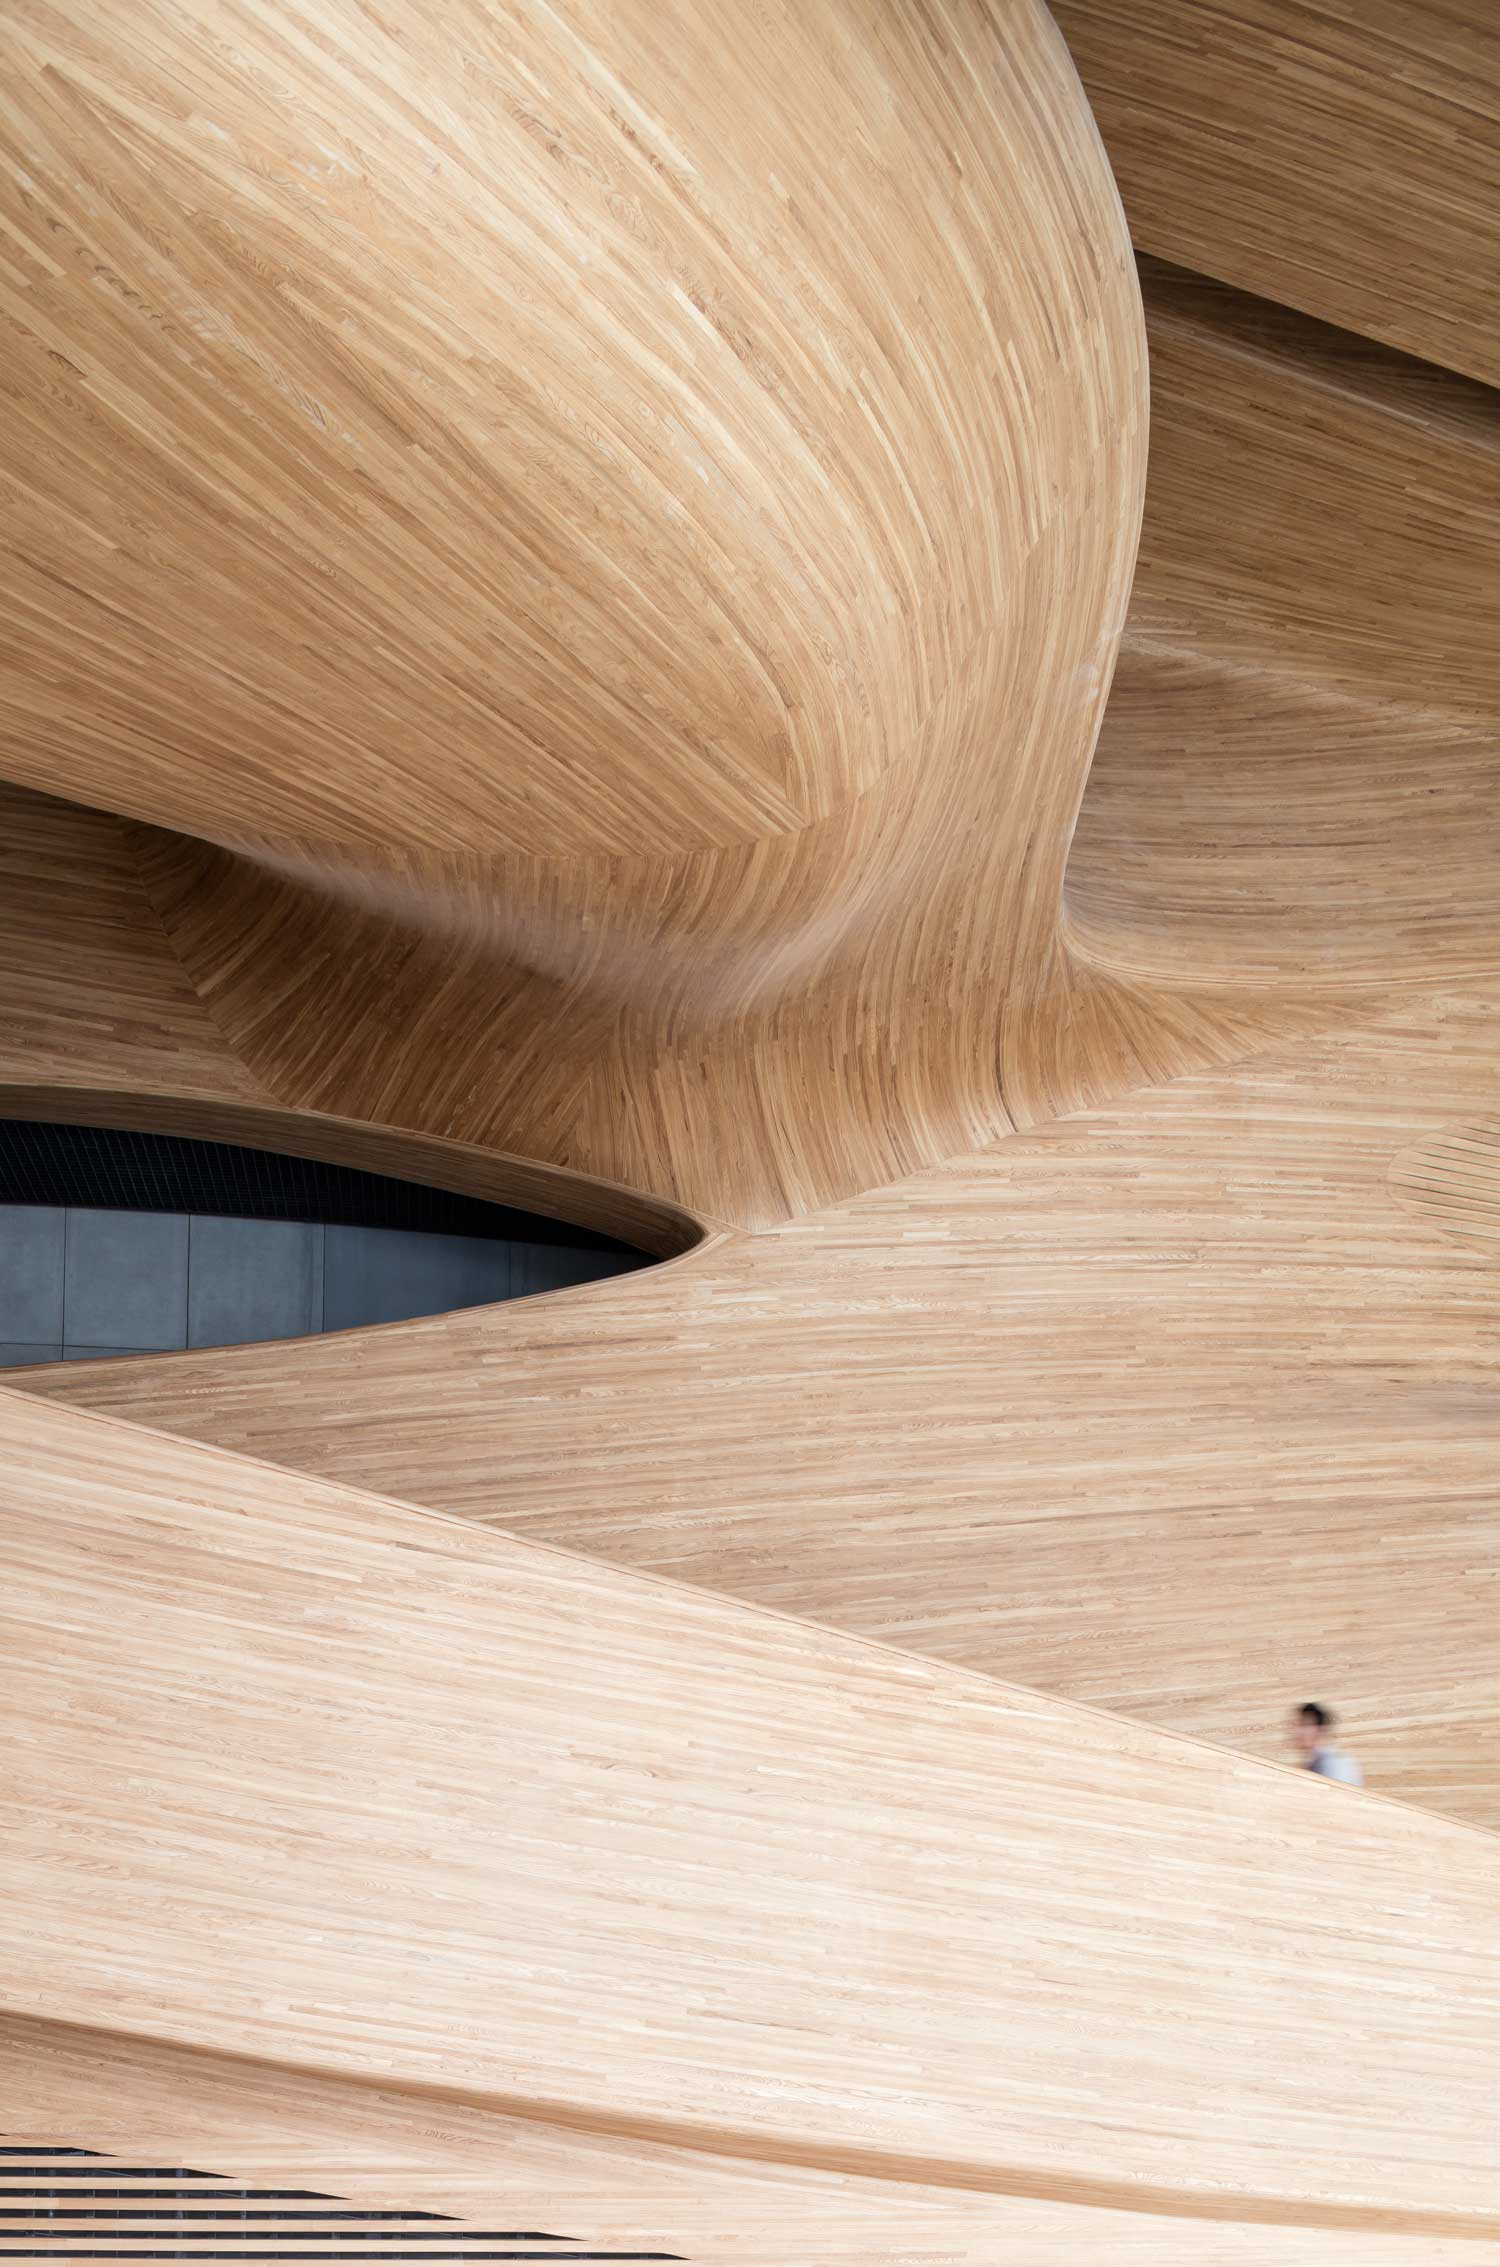 Amazing wooden interior like a boat